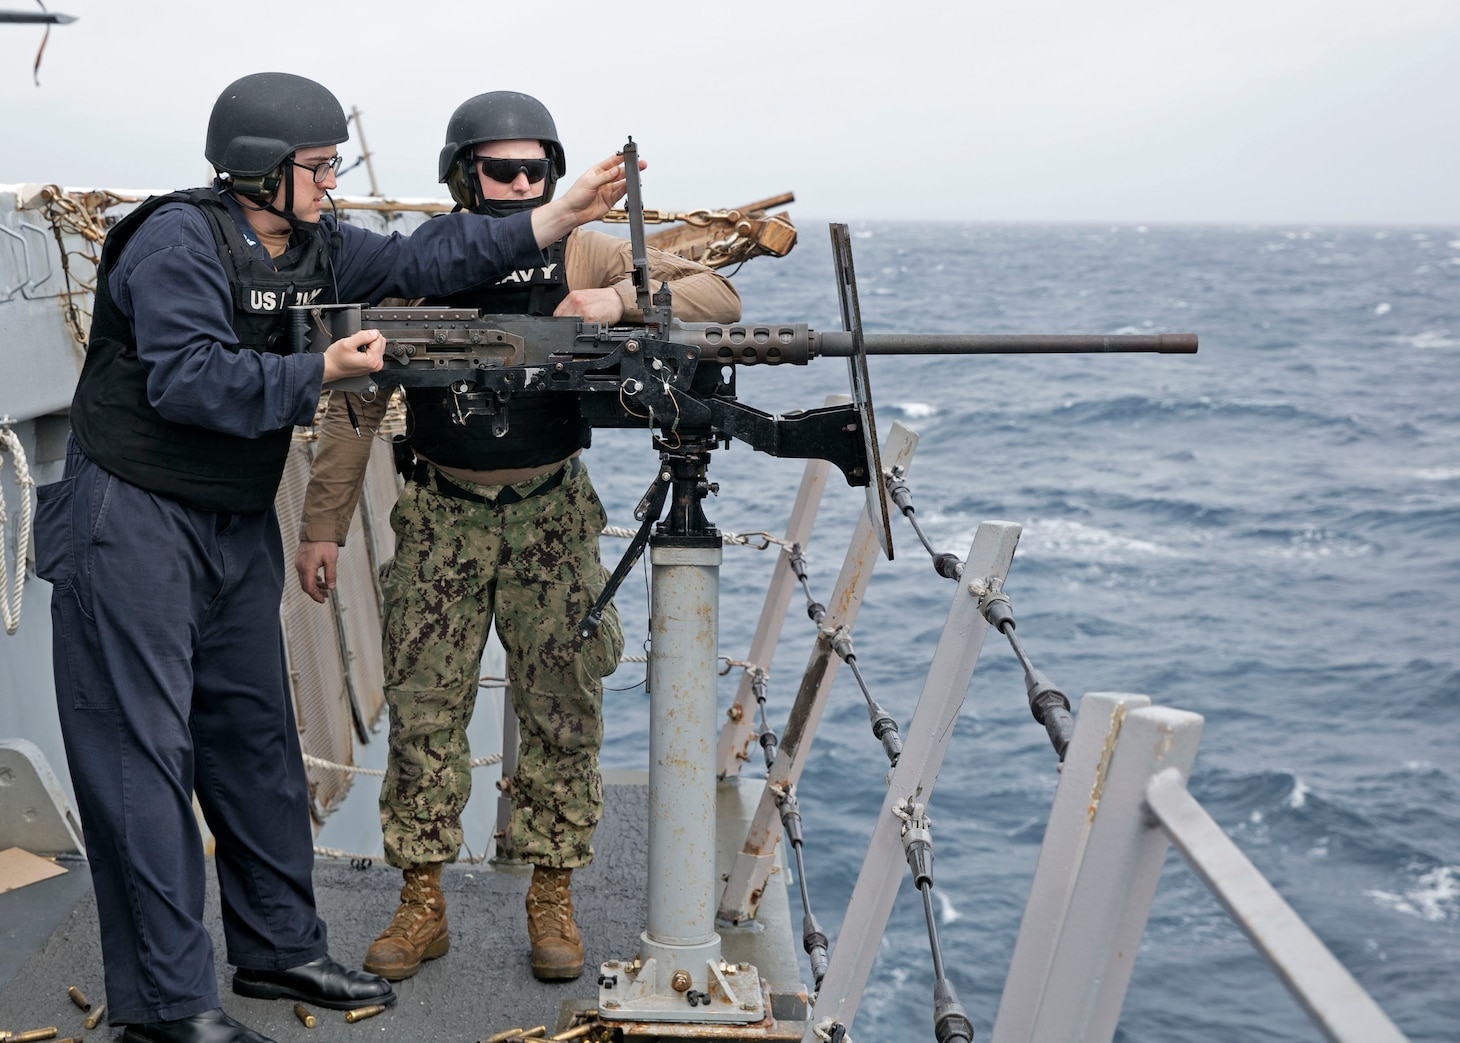 Gunner's Mate 2nd Class Dylan Harris, right, and Logistics Specialist 3rd Class Aaron Scott assigned to the amphibious transport dock ship USS San Antonio (LPD 17) inspect a M-2 .50 caliber machine gun during a live-fire exercise on the ship's flight deck, April 1, 2021.